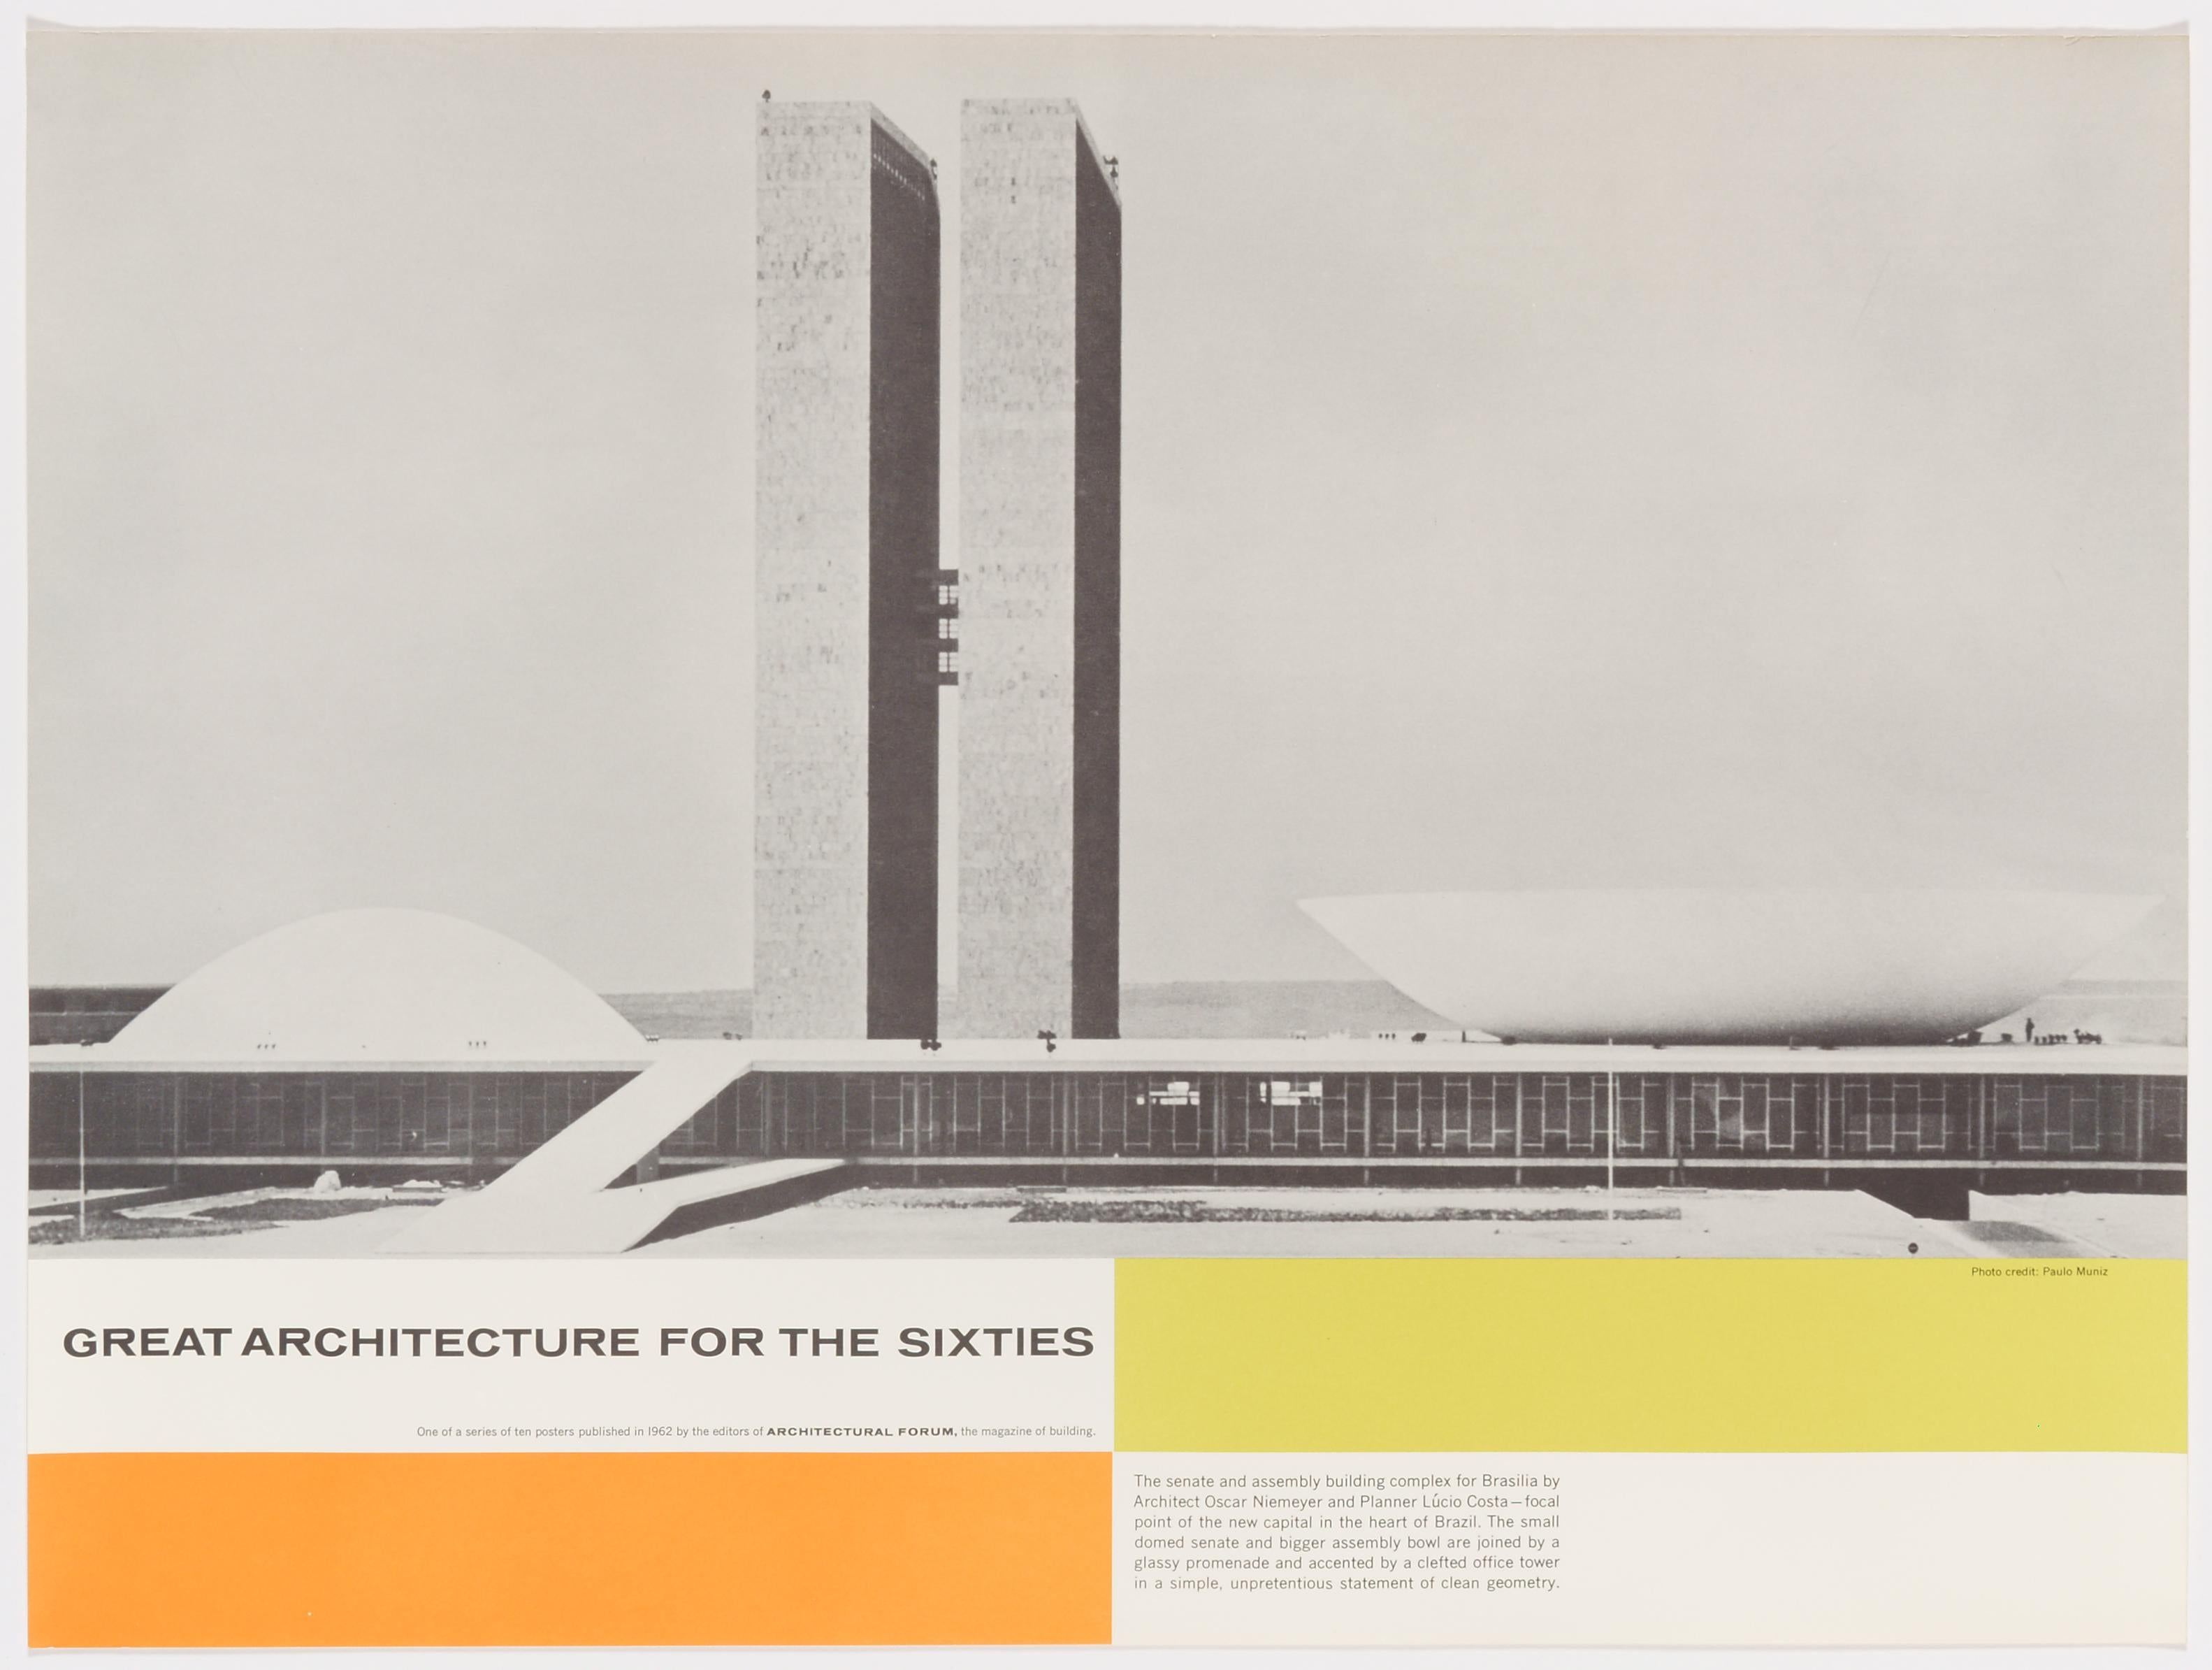 Great Architecture for the Sixties –Oscar Niemeyer's complex in Brasilia